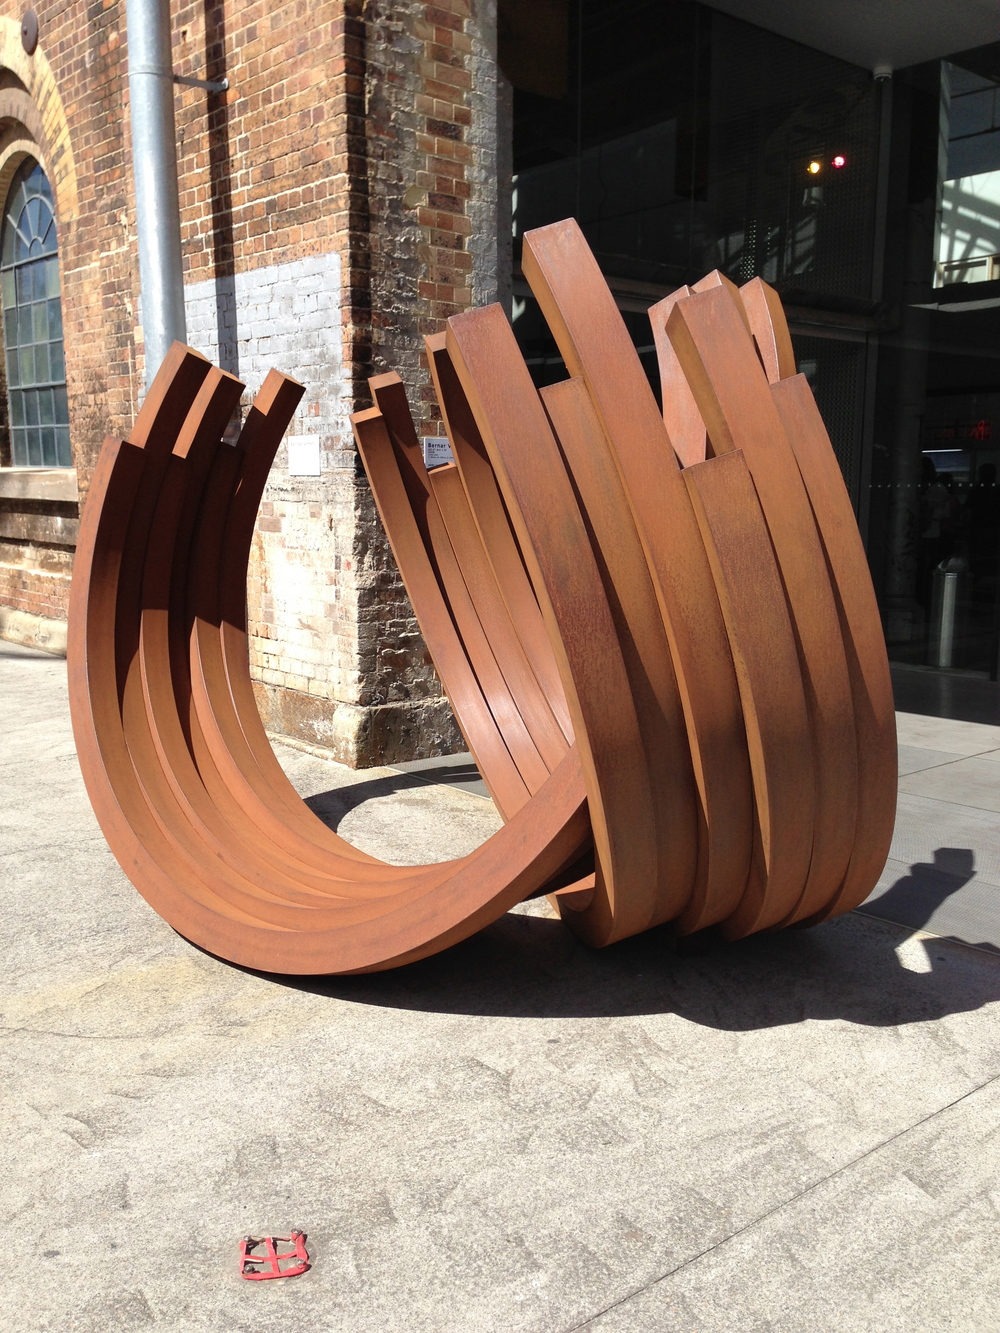 Bernar Venet at Carriageworks, Art Plural, Singapore